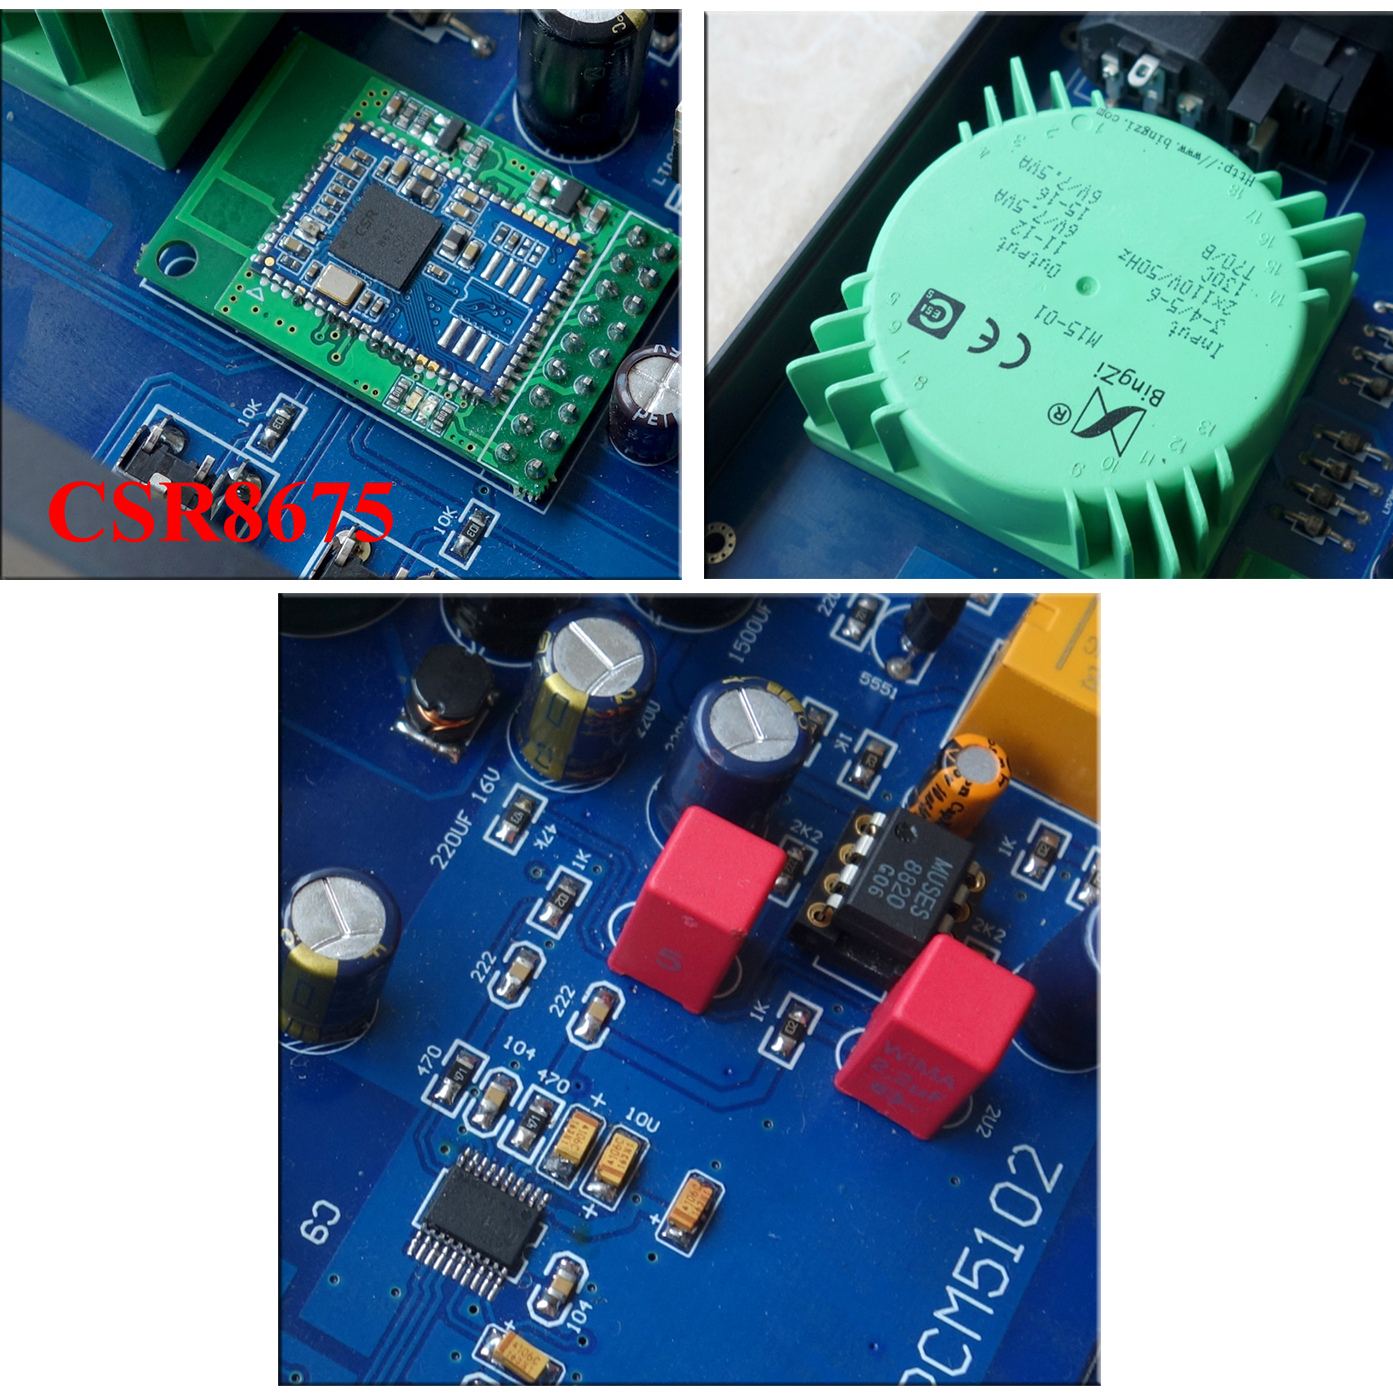 Active Sny-30a Csr8675 Bluetooth 5.0 Pcm5102 Dac Decoder Bluetooth Receiver W/ Linear Power Circuit Back To Search Resultsconsumer Electronics